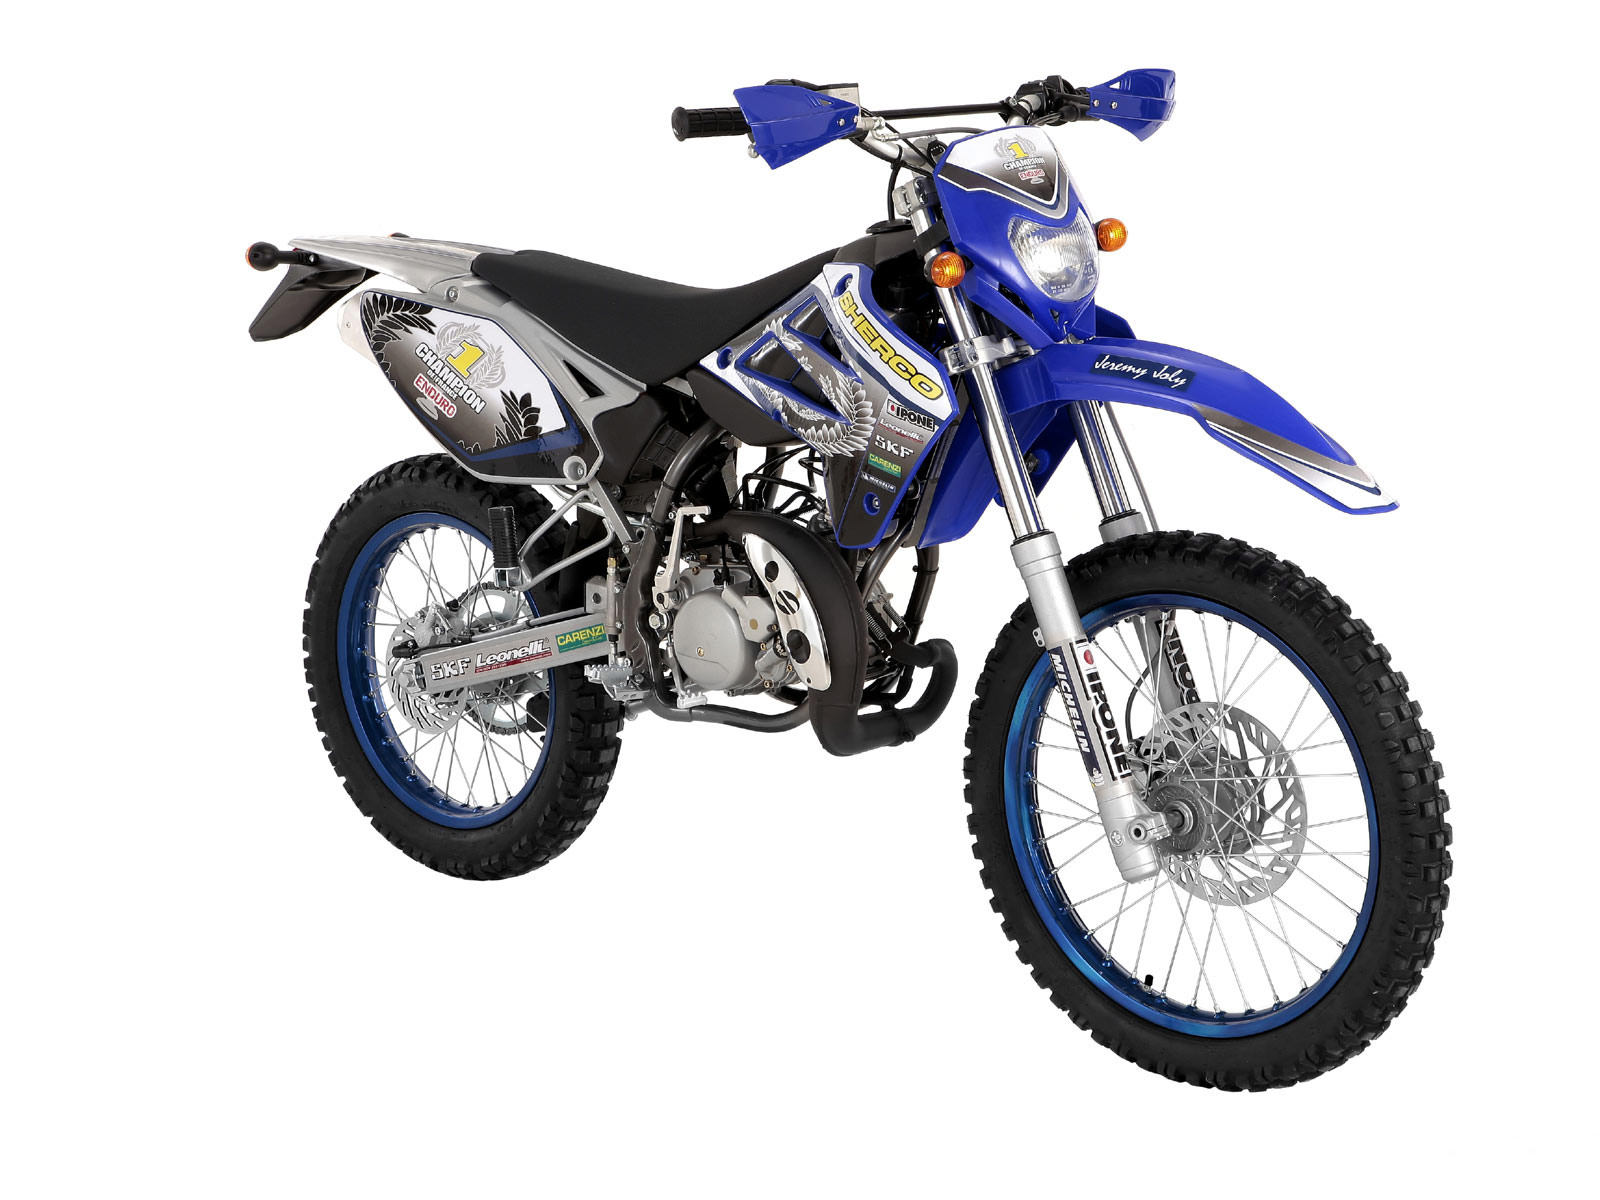 Sherco 5.1i 4T Supermotard 2007 images #124376